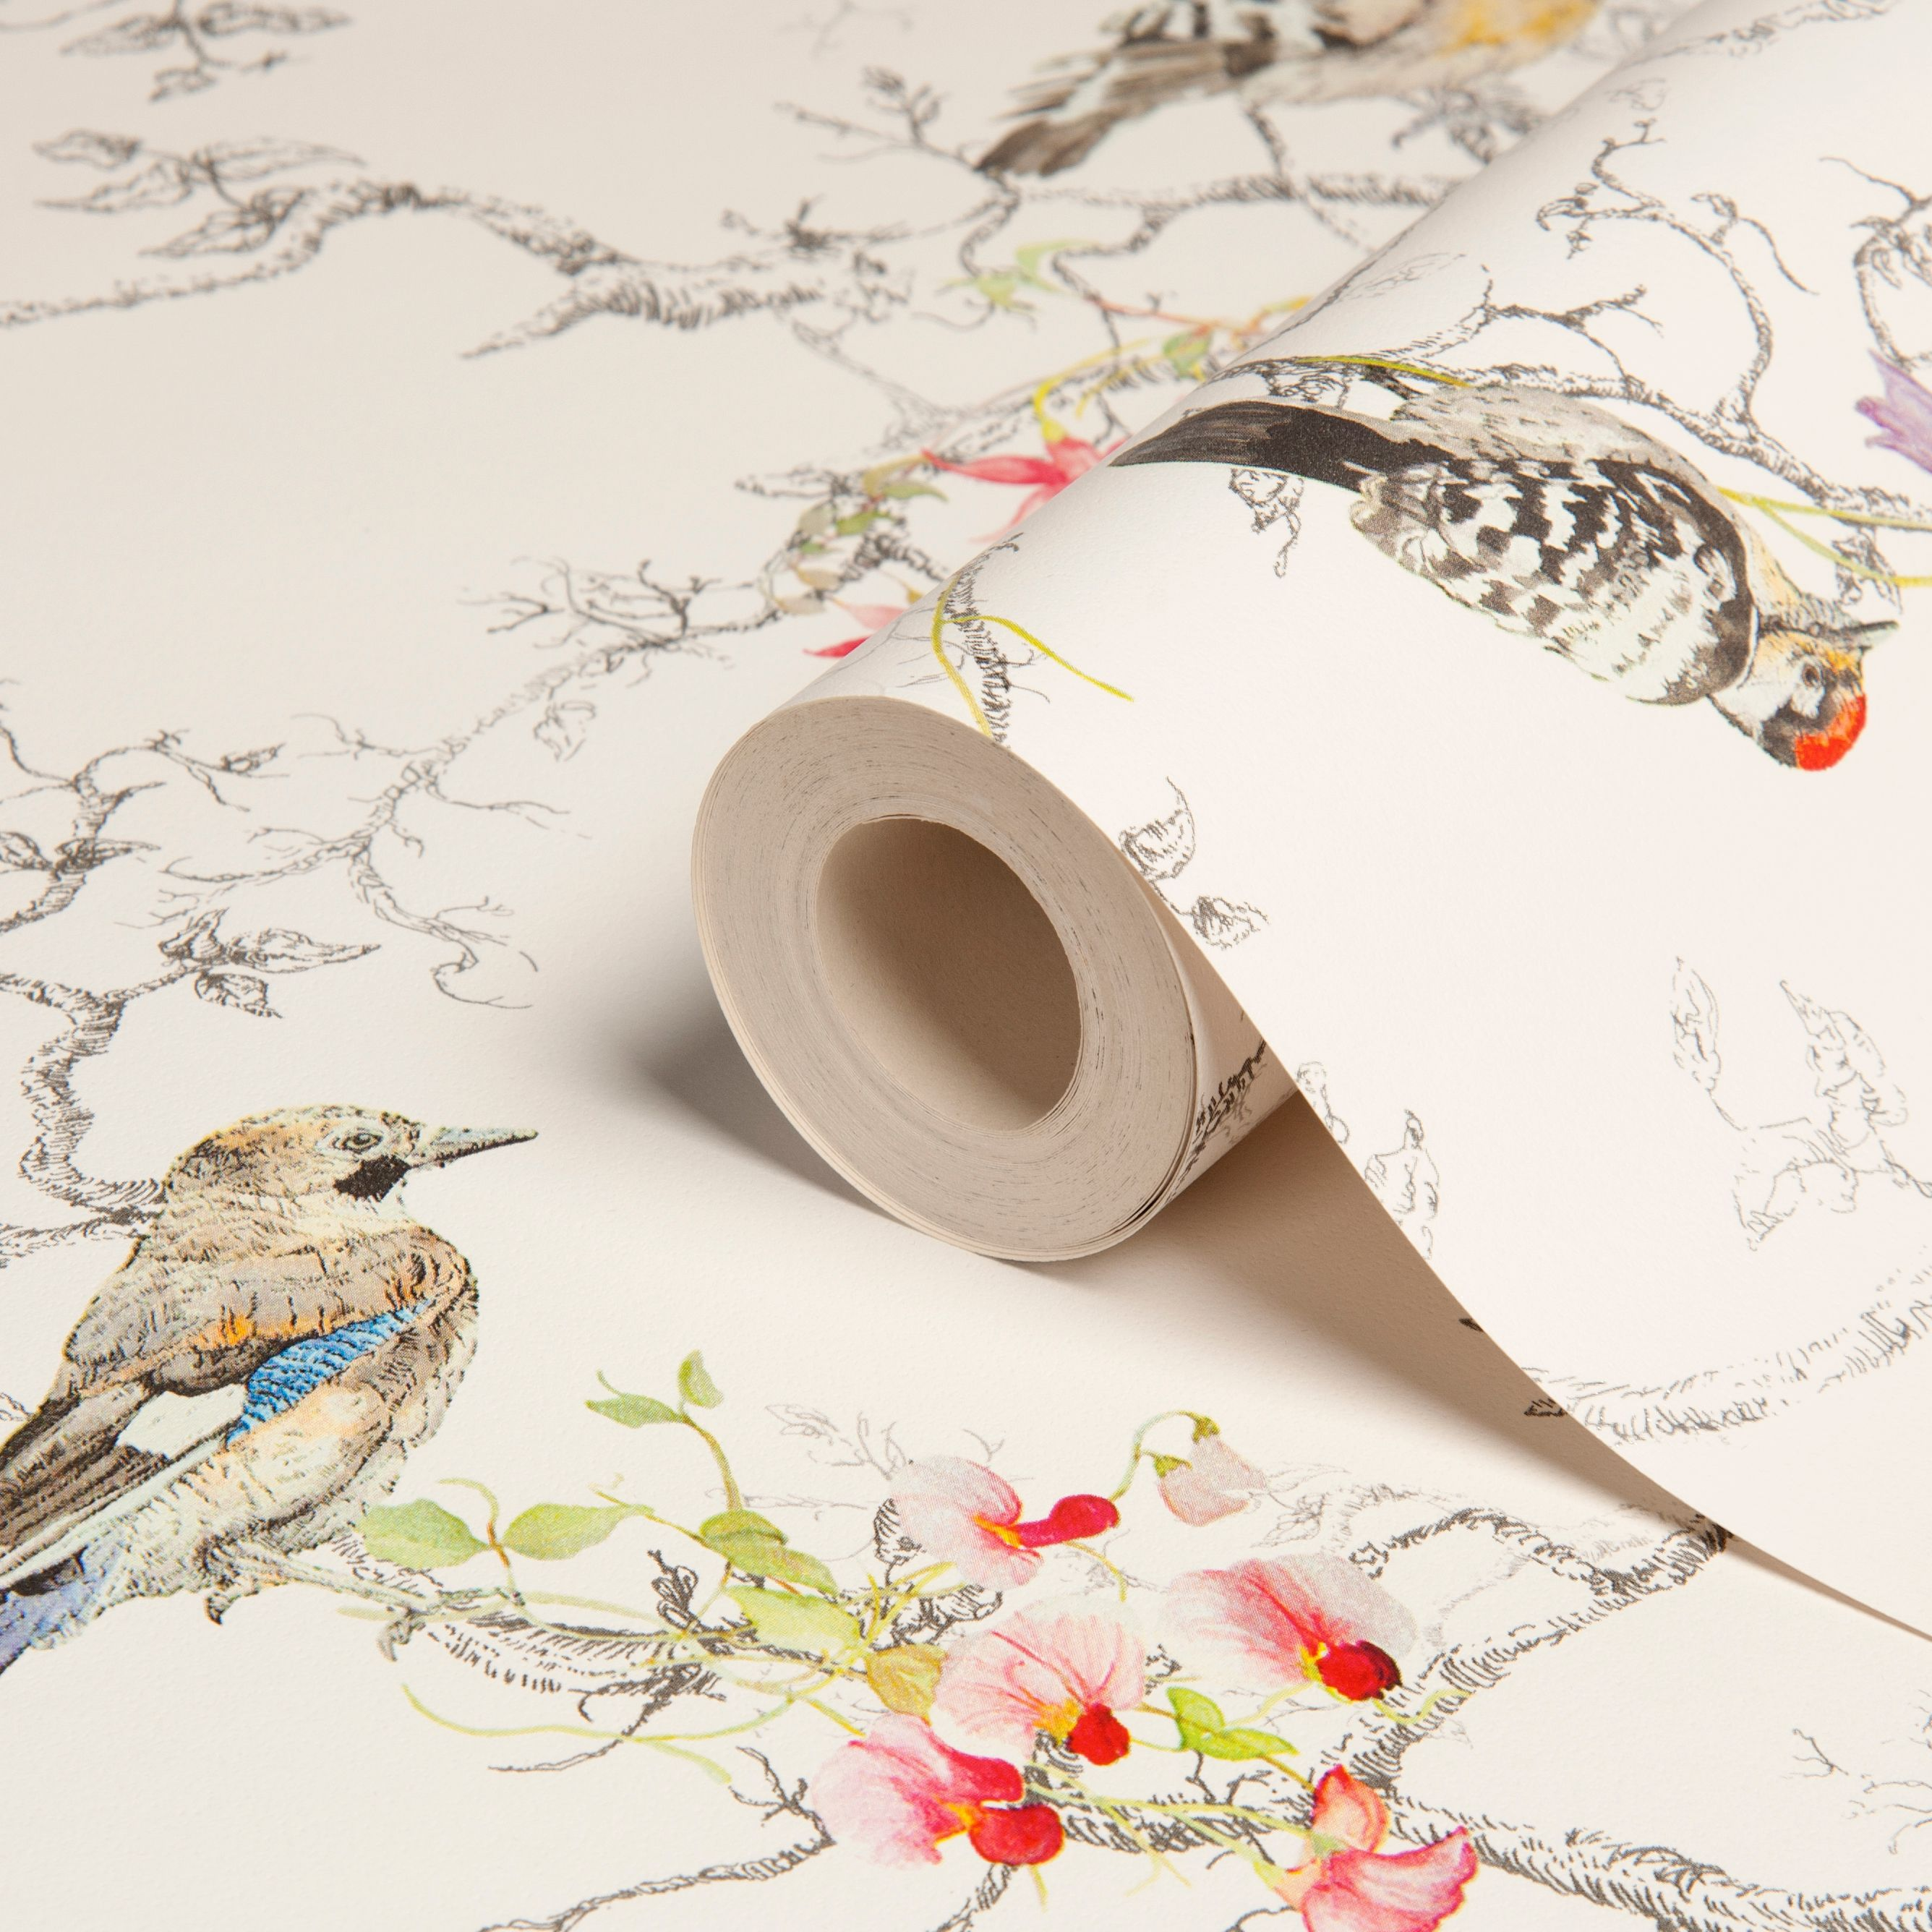 Statement ornithology birds metallic effect wallpaper B q bathroom design service